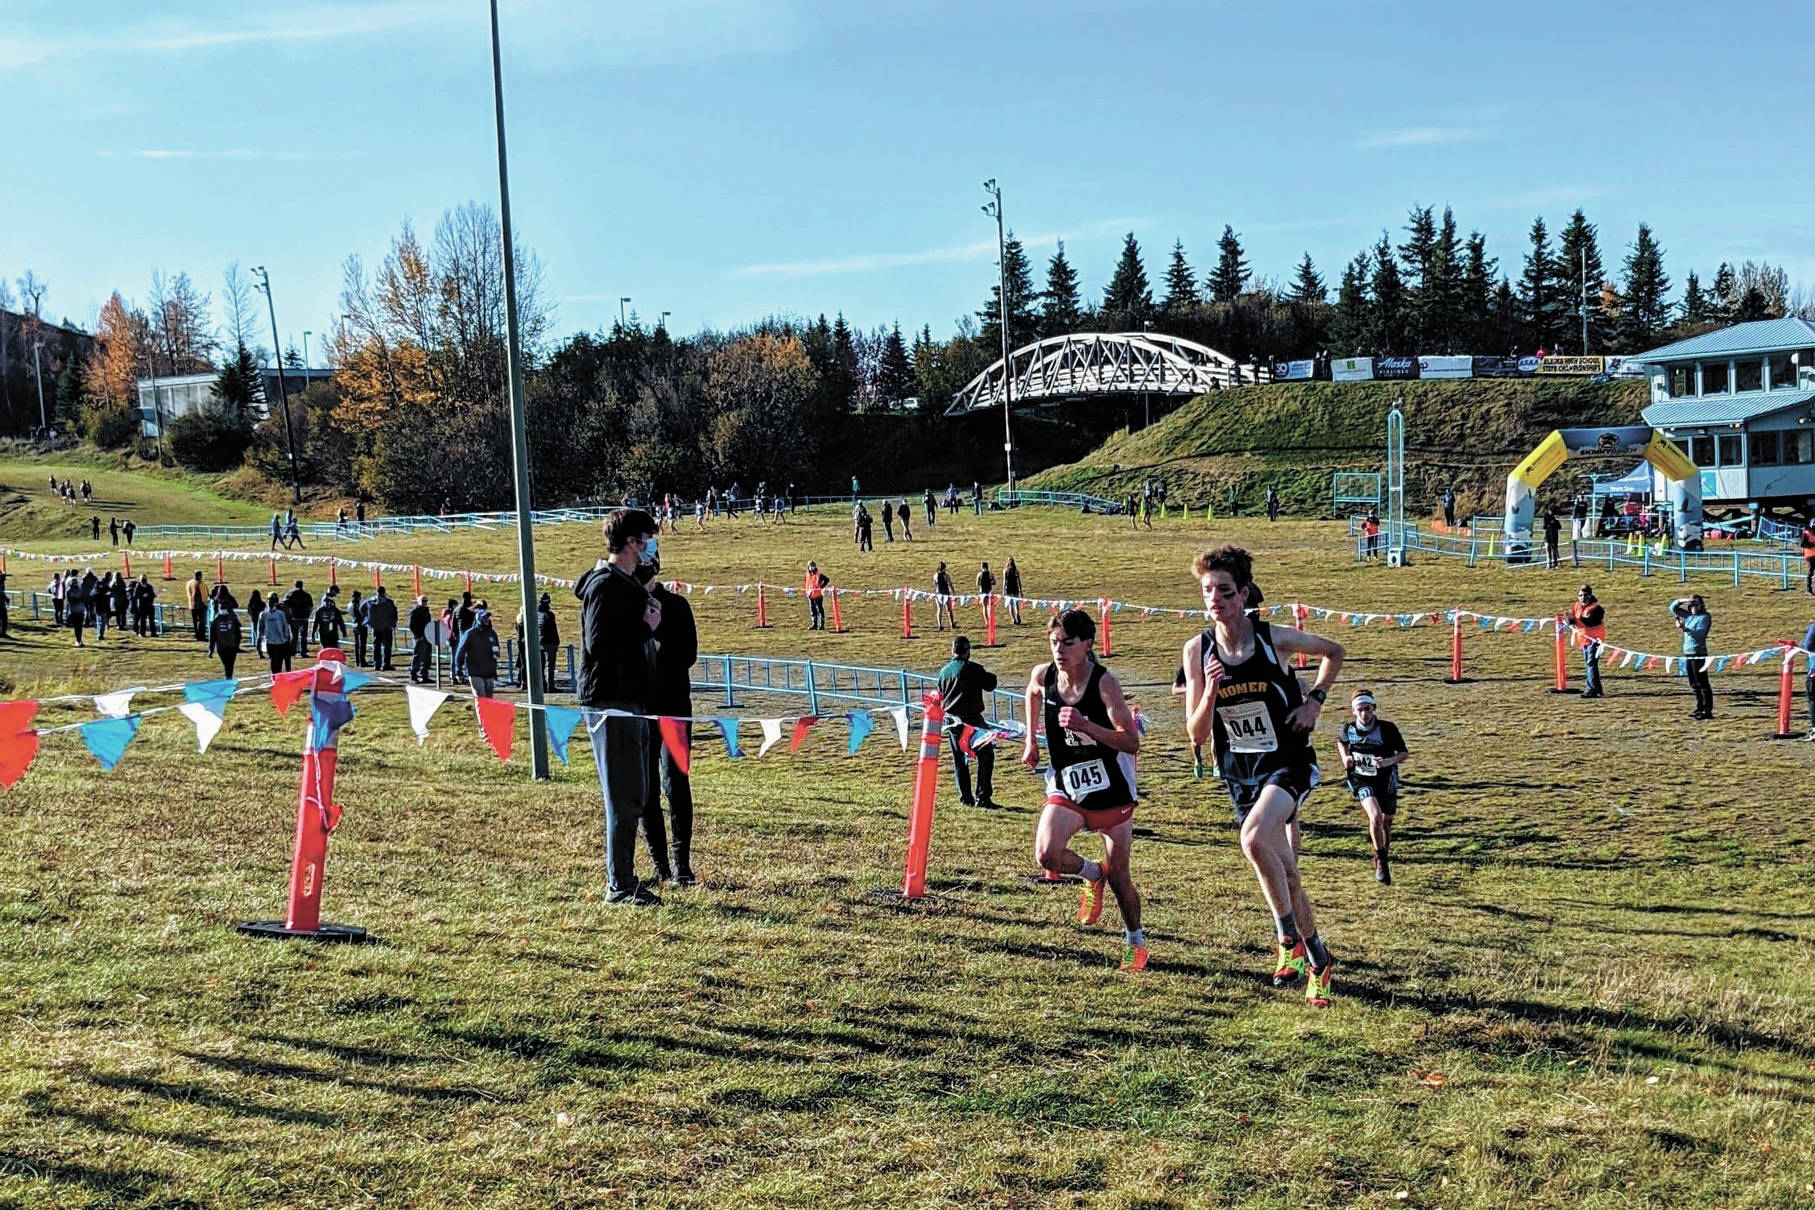 Seamus McDonough competes in the boys' Division II state cross country meet Saturday, Oct. 10, 2020 in Anchorage, Alaska. (Photo by Catriona Reynolds)